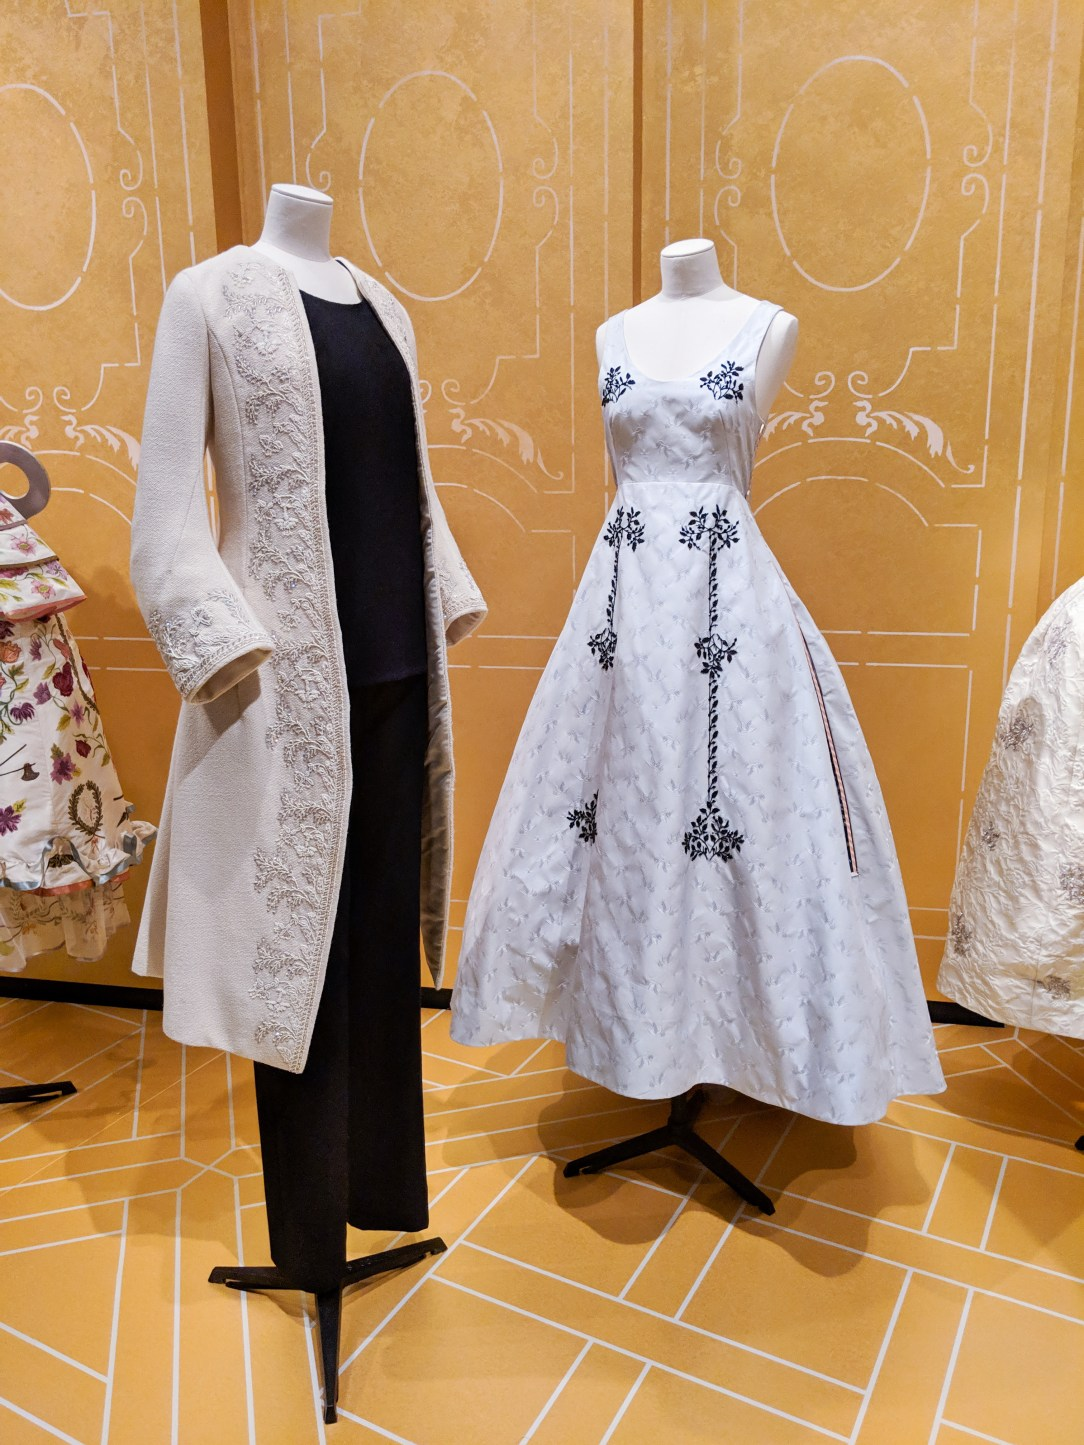 Dior jacket and gown